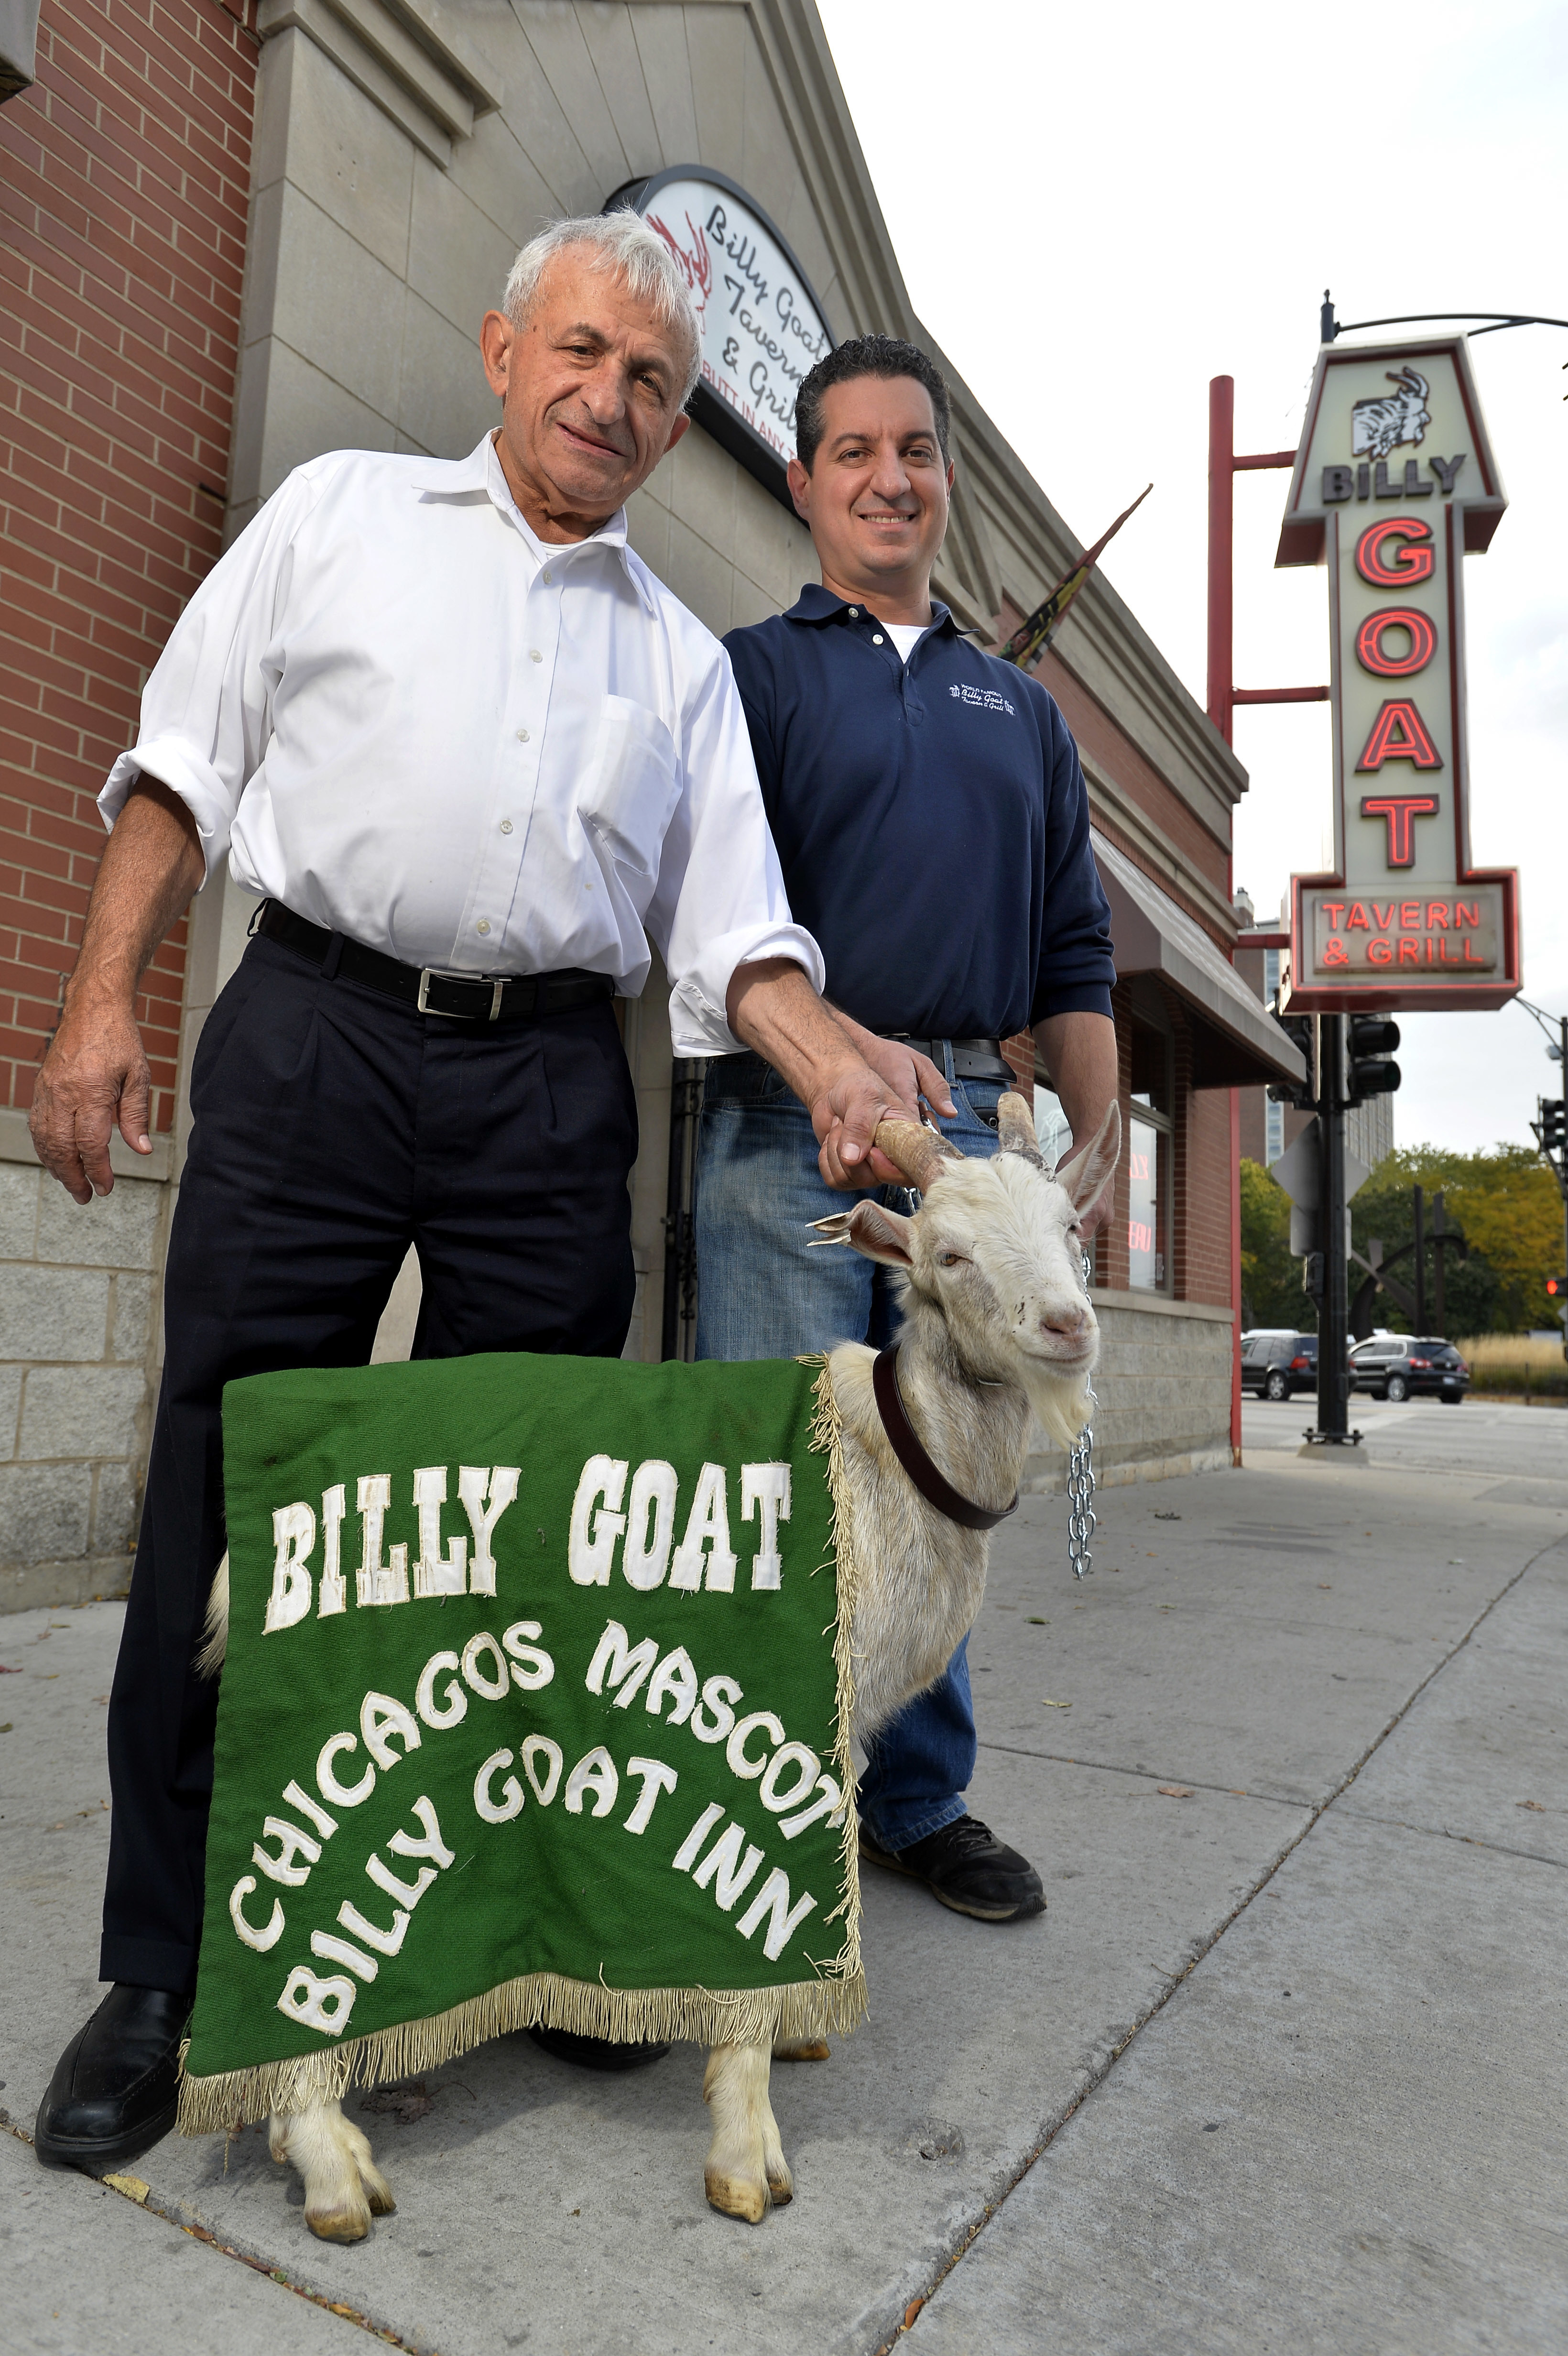 """FILE - In this Oct. 20, 2015 file photo, Billy Goat Tavern owners Sam Sianis, left, and his son Bill pose with """"Billy"""" the goat outside their tavern on Madison Street in Chicago. In 1945 Sam's uncle, William, cast a curse over the Chicago Cubs for not let"""